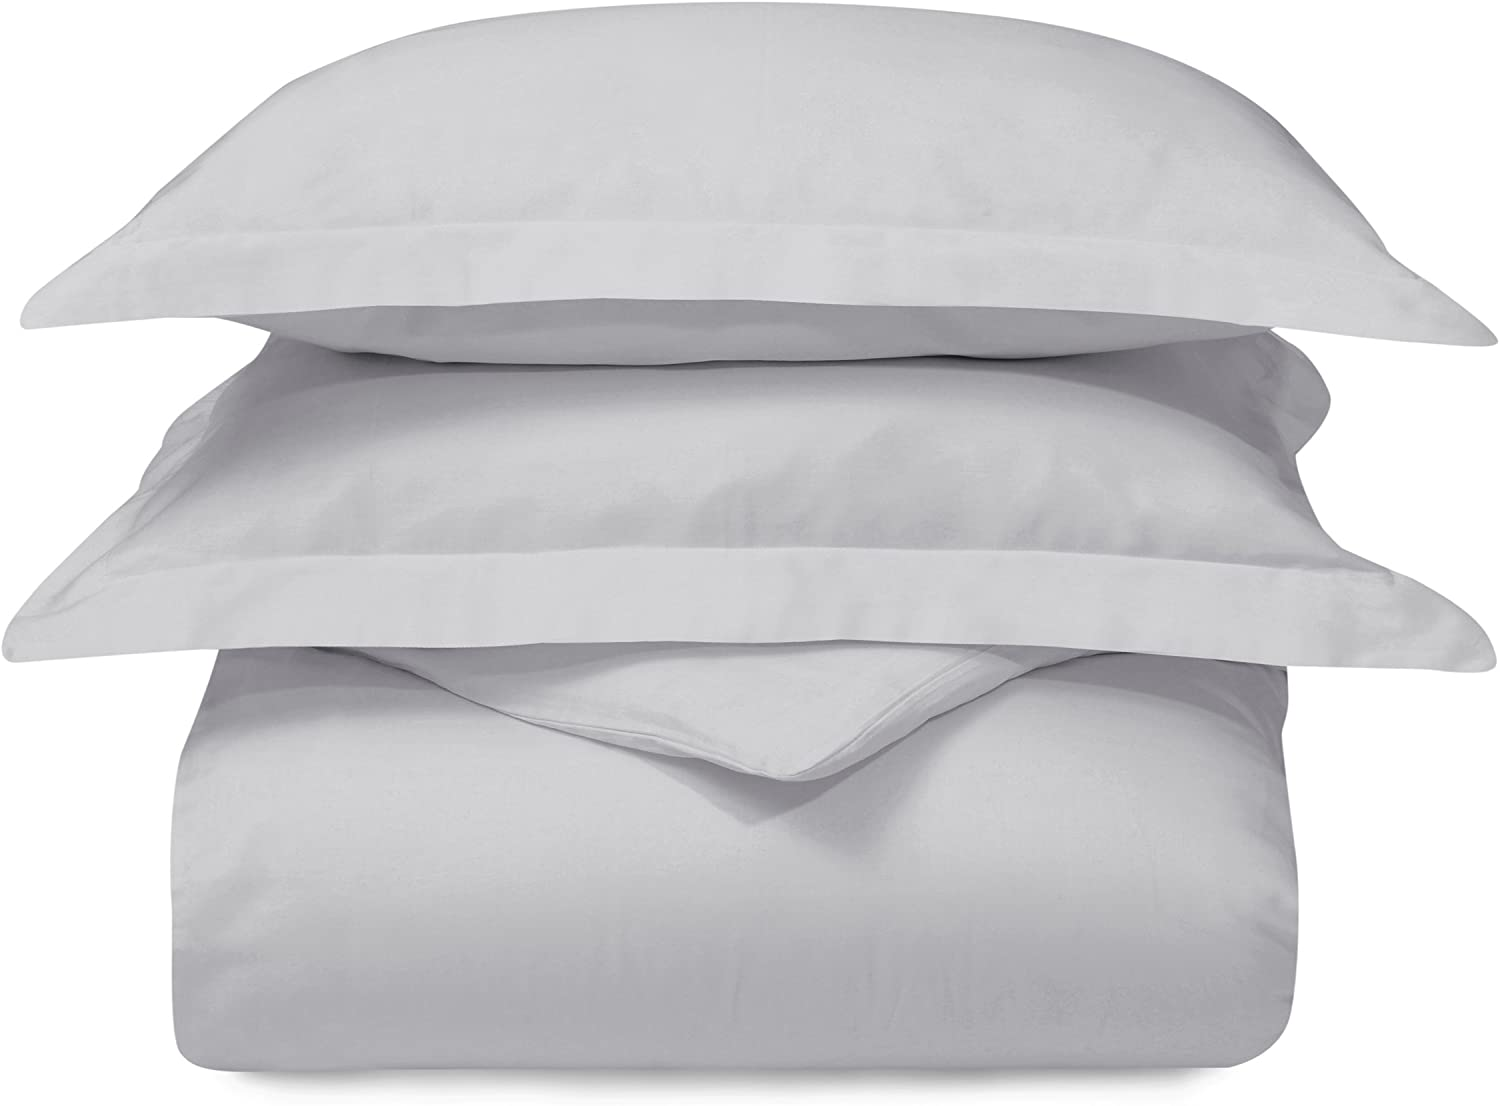 SUPERIOR Special Campaign 100% Cotton King Cal Light Ranking TOP18 Antimicrobial Duvet Set